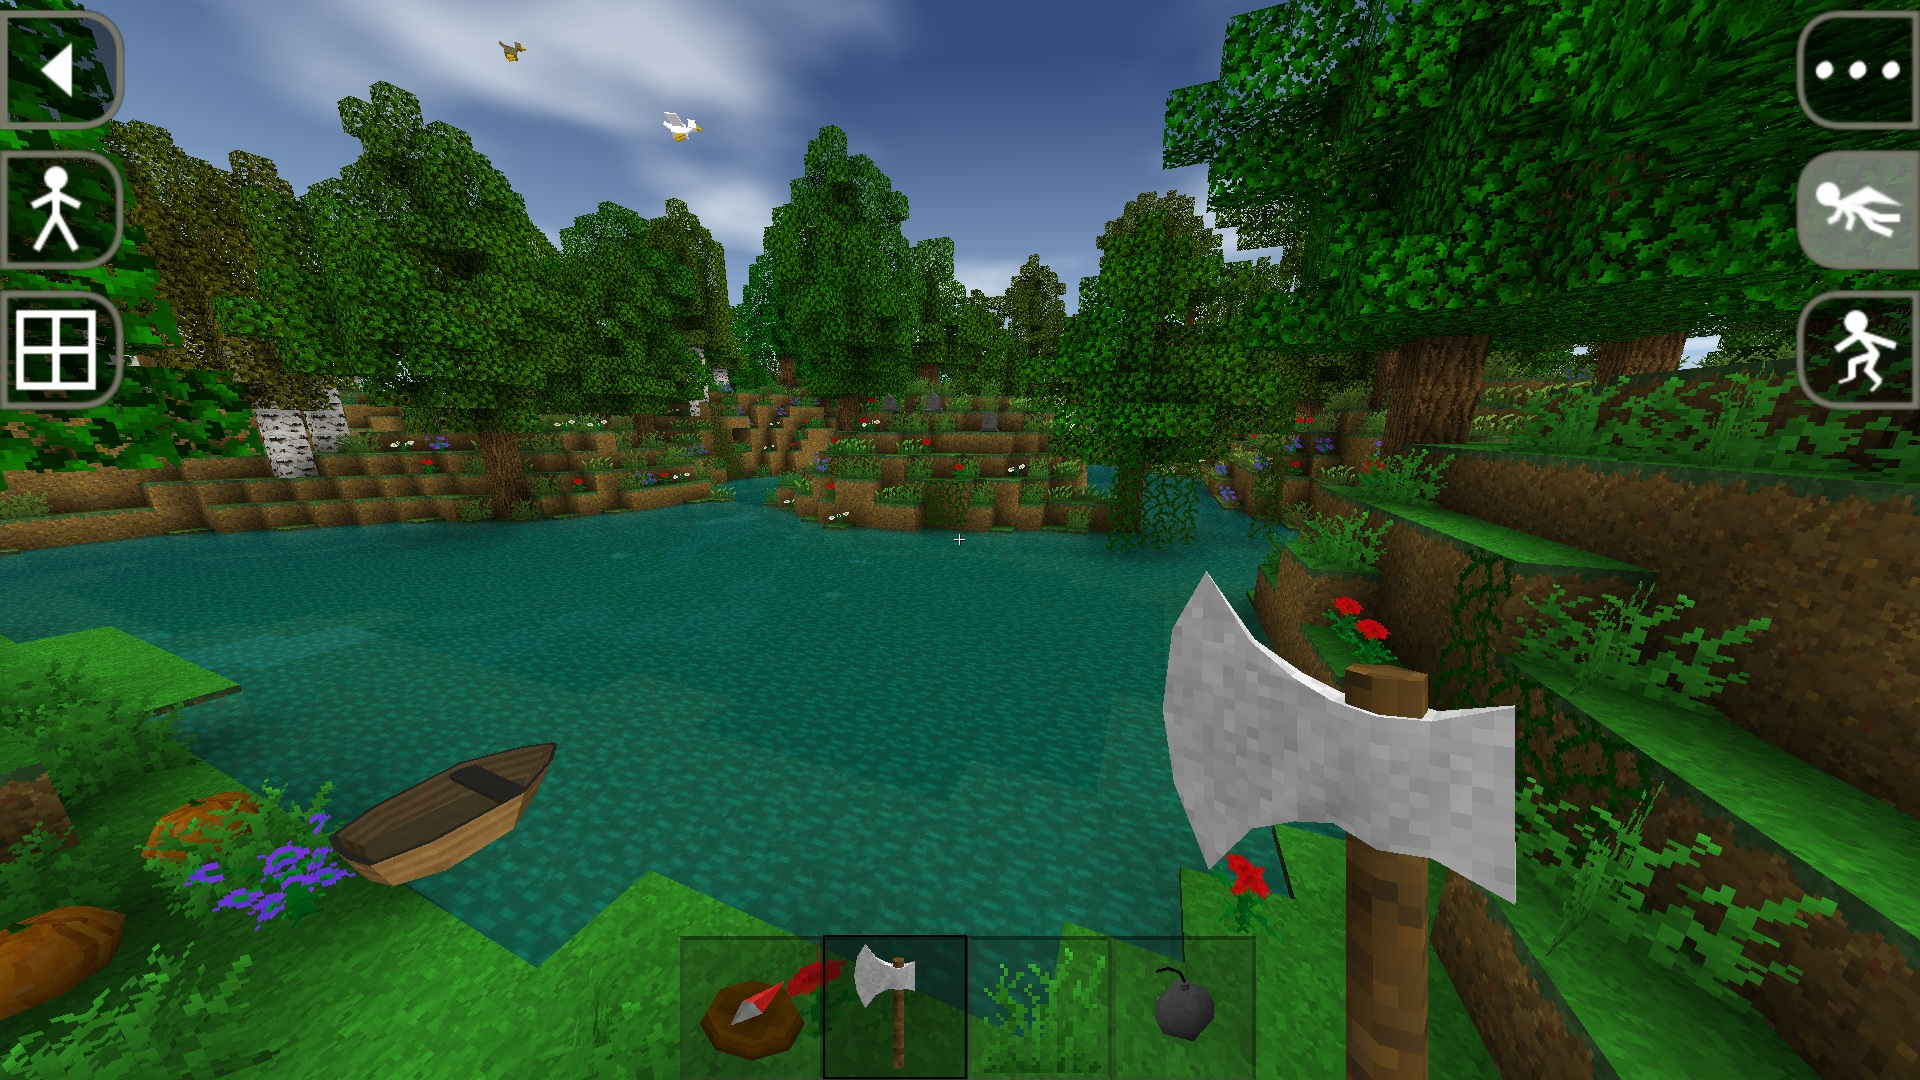 Amazoncom Survivalcraft Demo Appstore For Android - Minecraft spiele demo